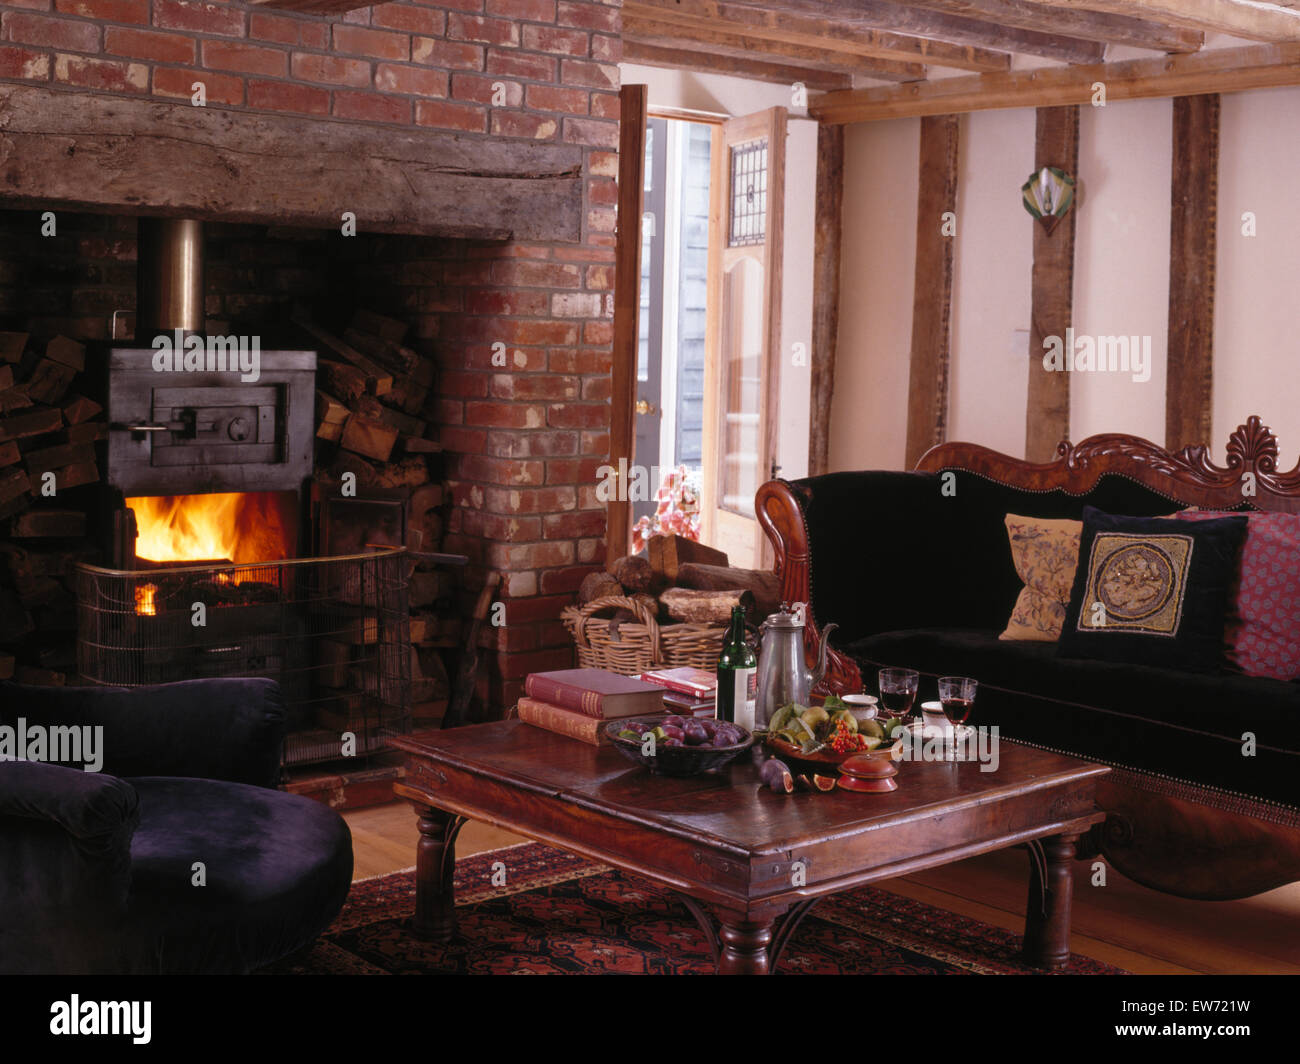 Wood Burning Stove In Inglenook Fireplace In Very